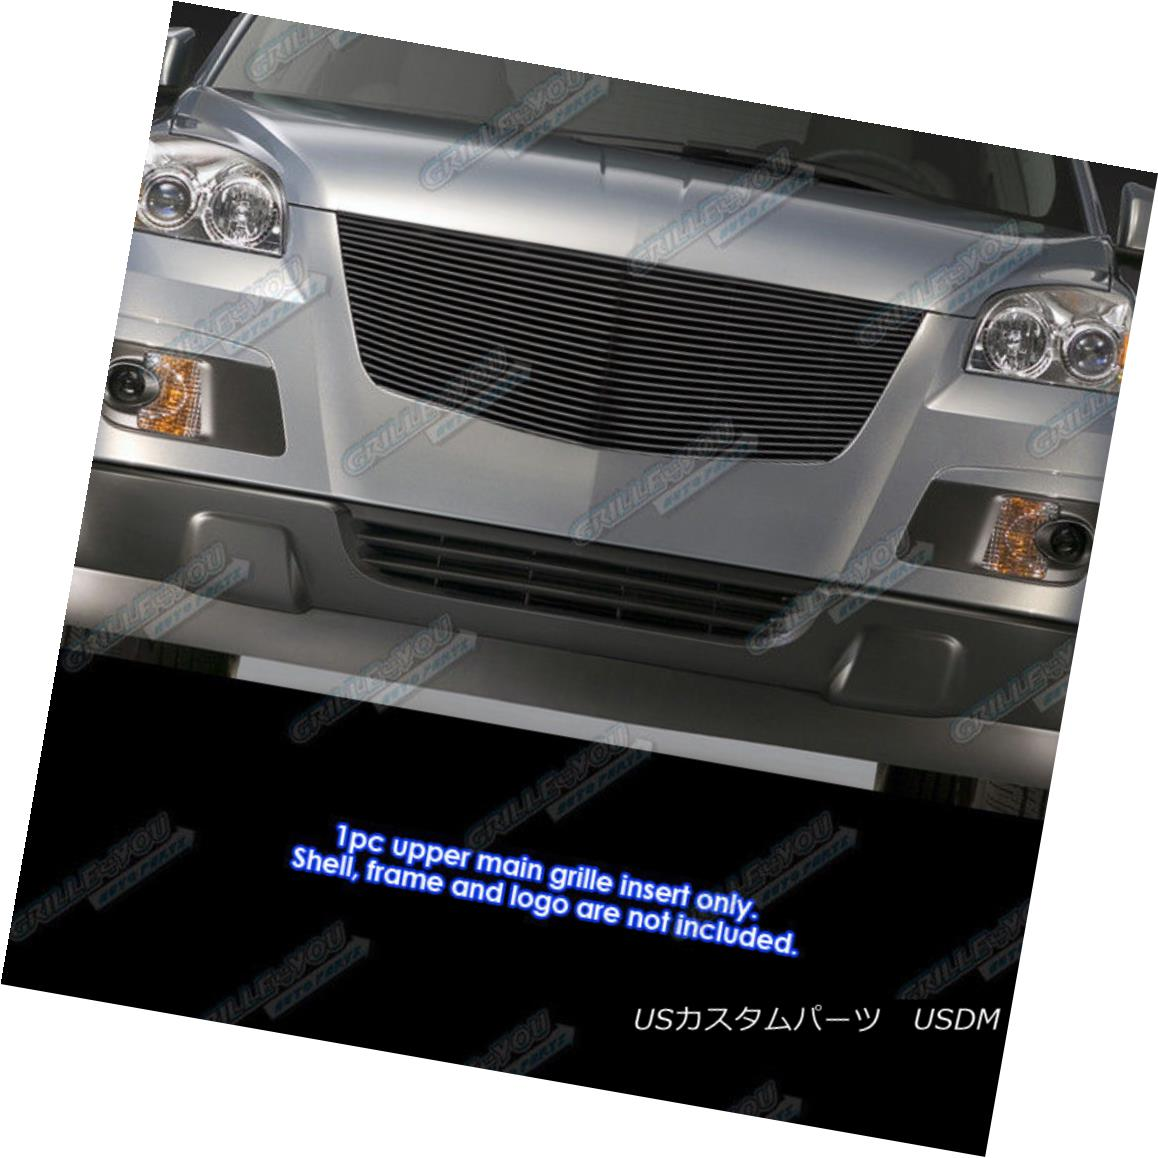 グリル Fits 2007-2009 Saturn Outlook Black Billet Grille Grill Insert 2007-2009 Saturn Outlook Black Billetグリルグリルインサート